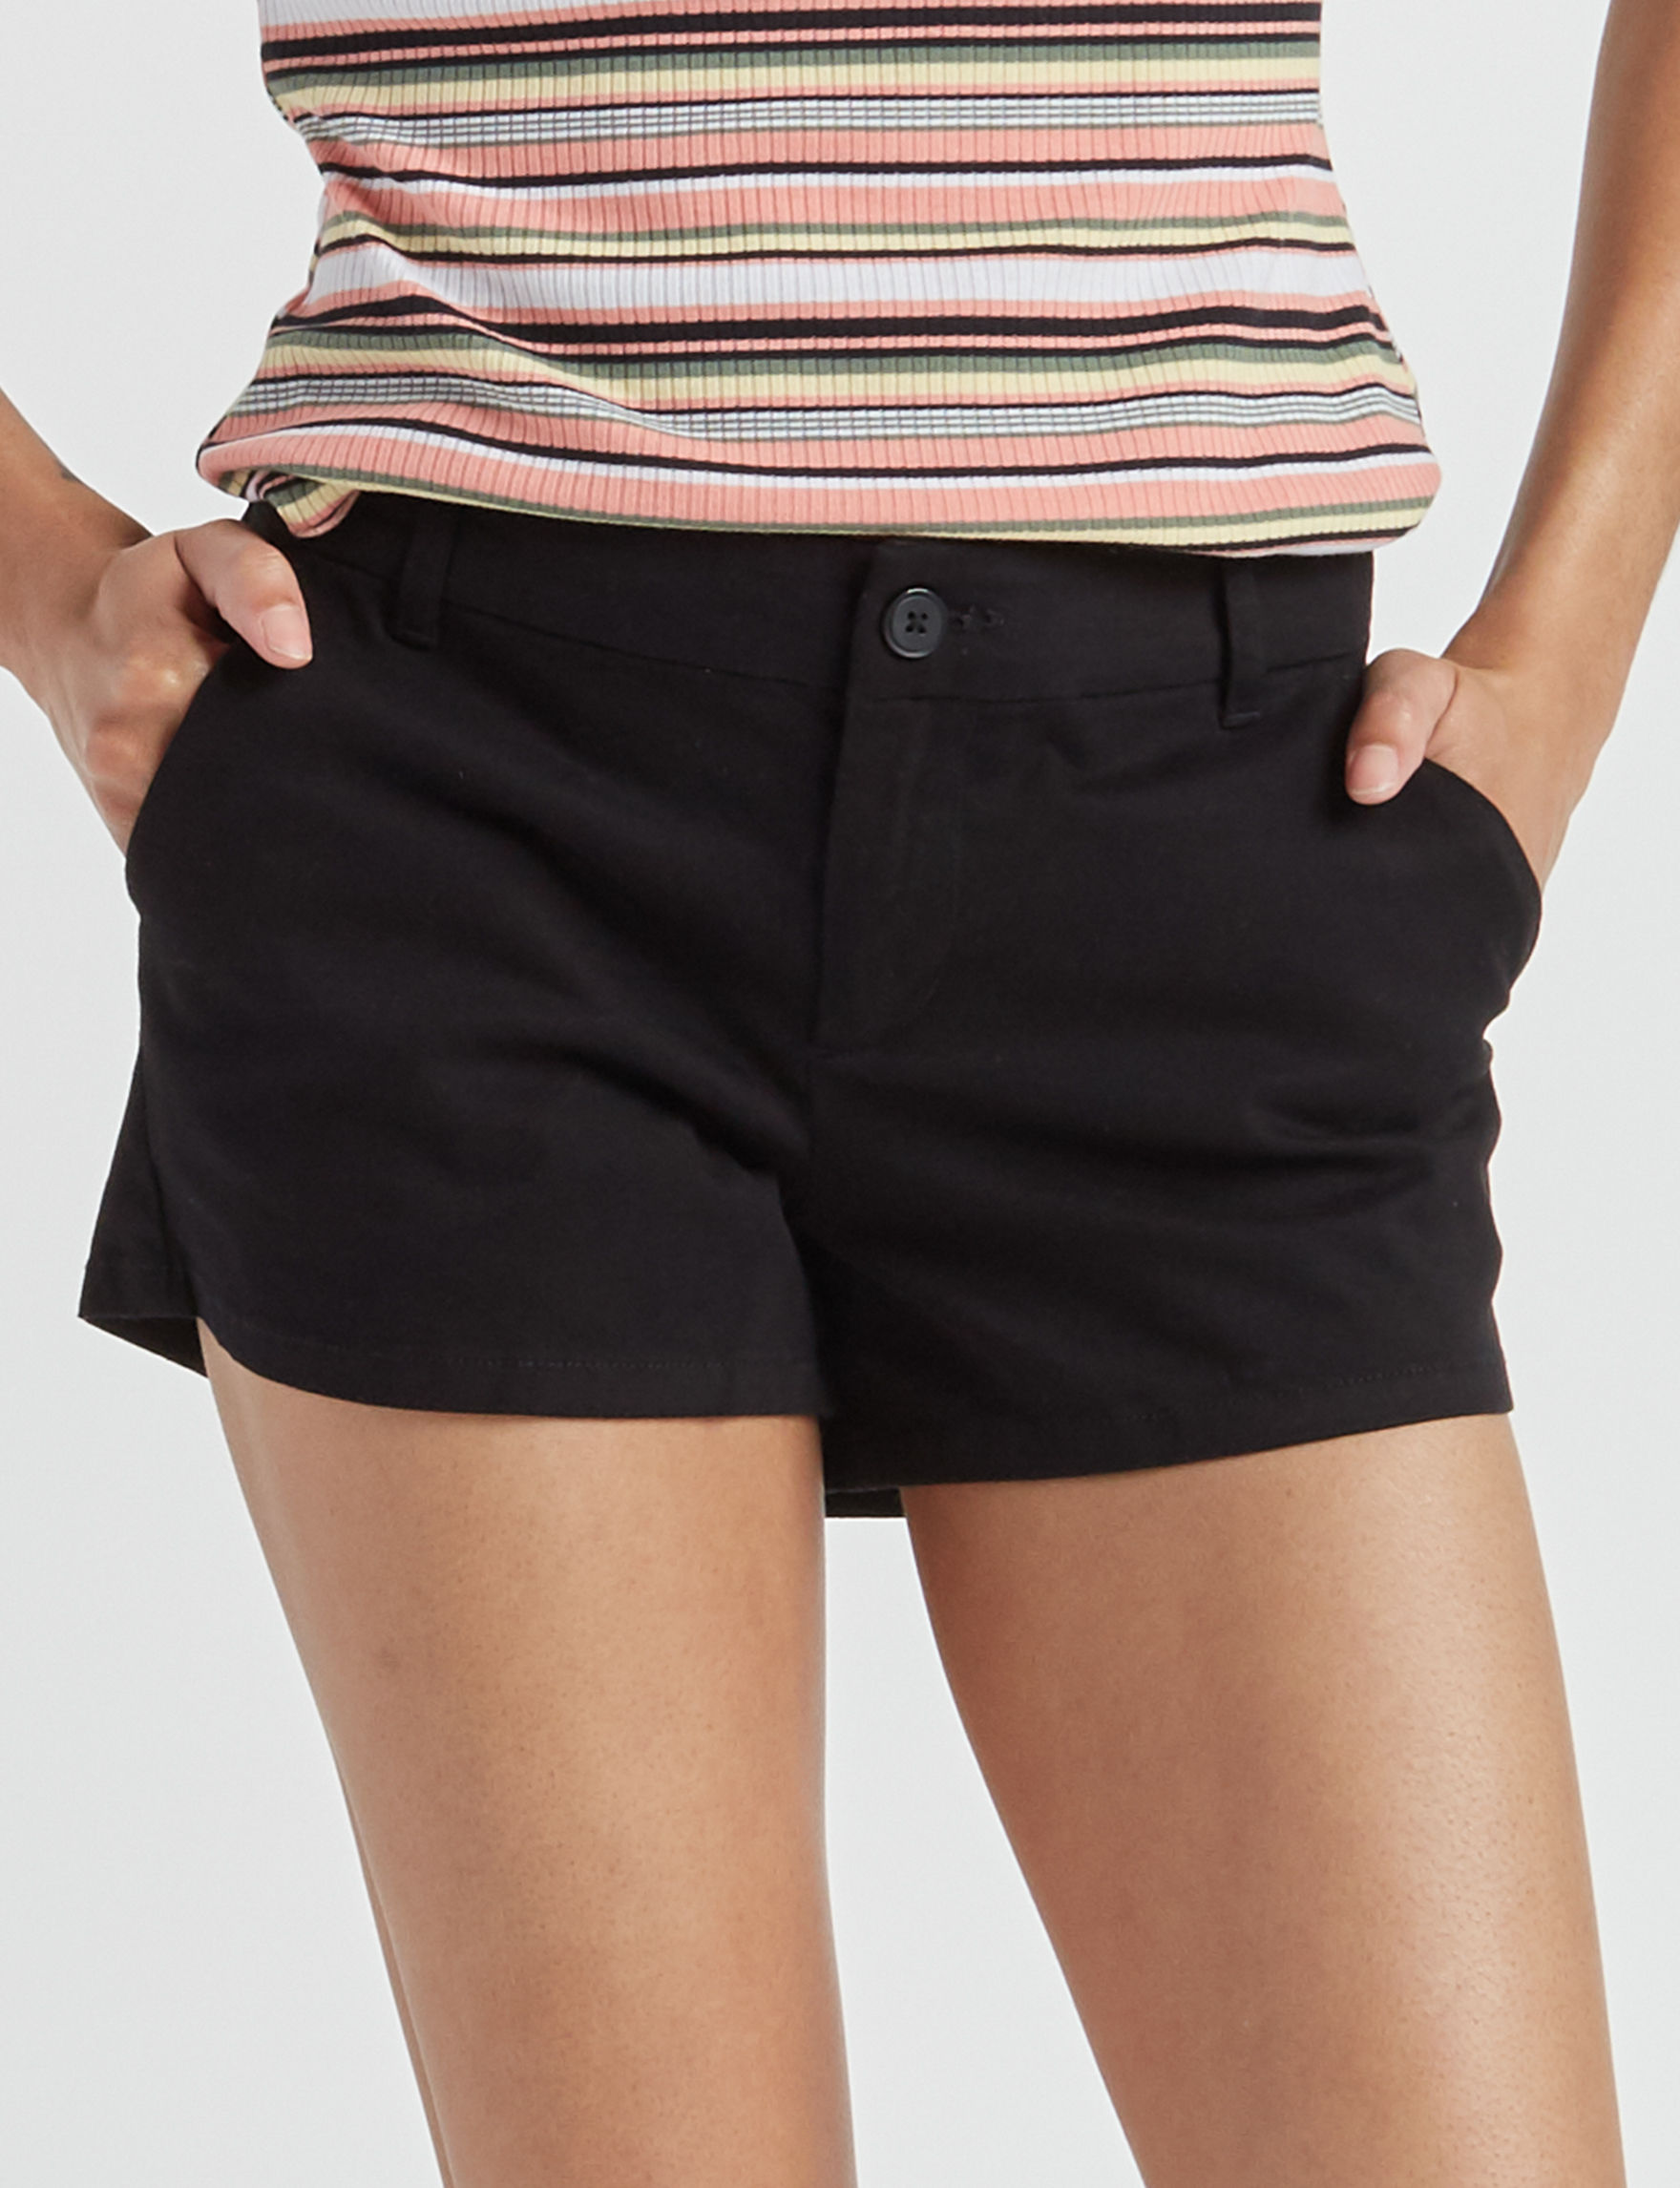 Wishful Park Black Tailored Shorts